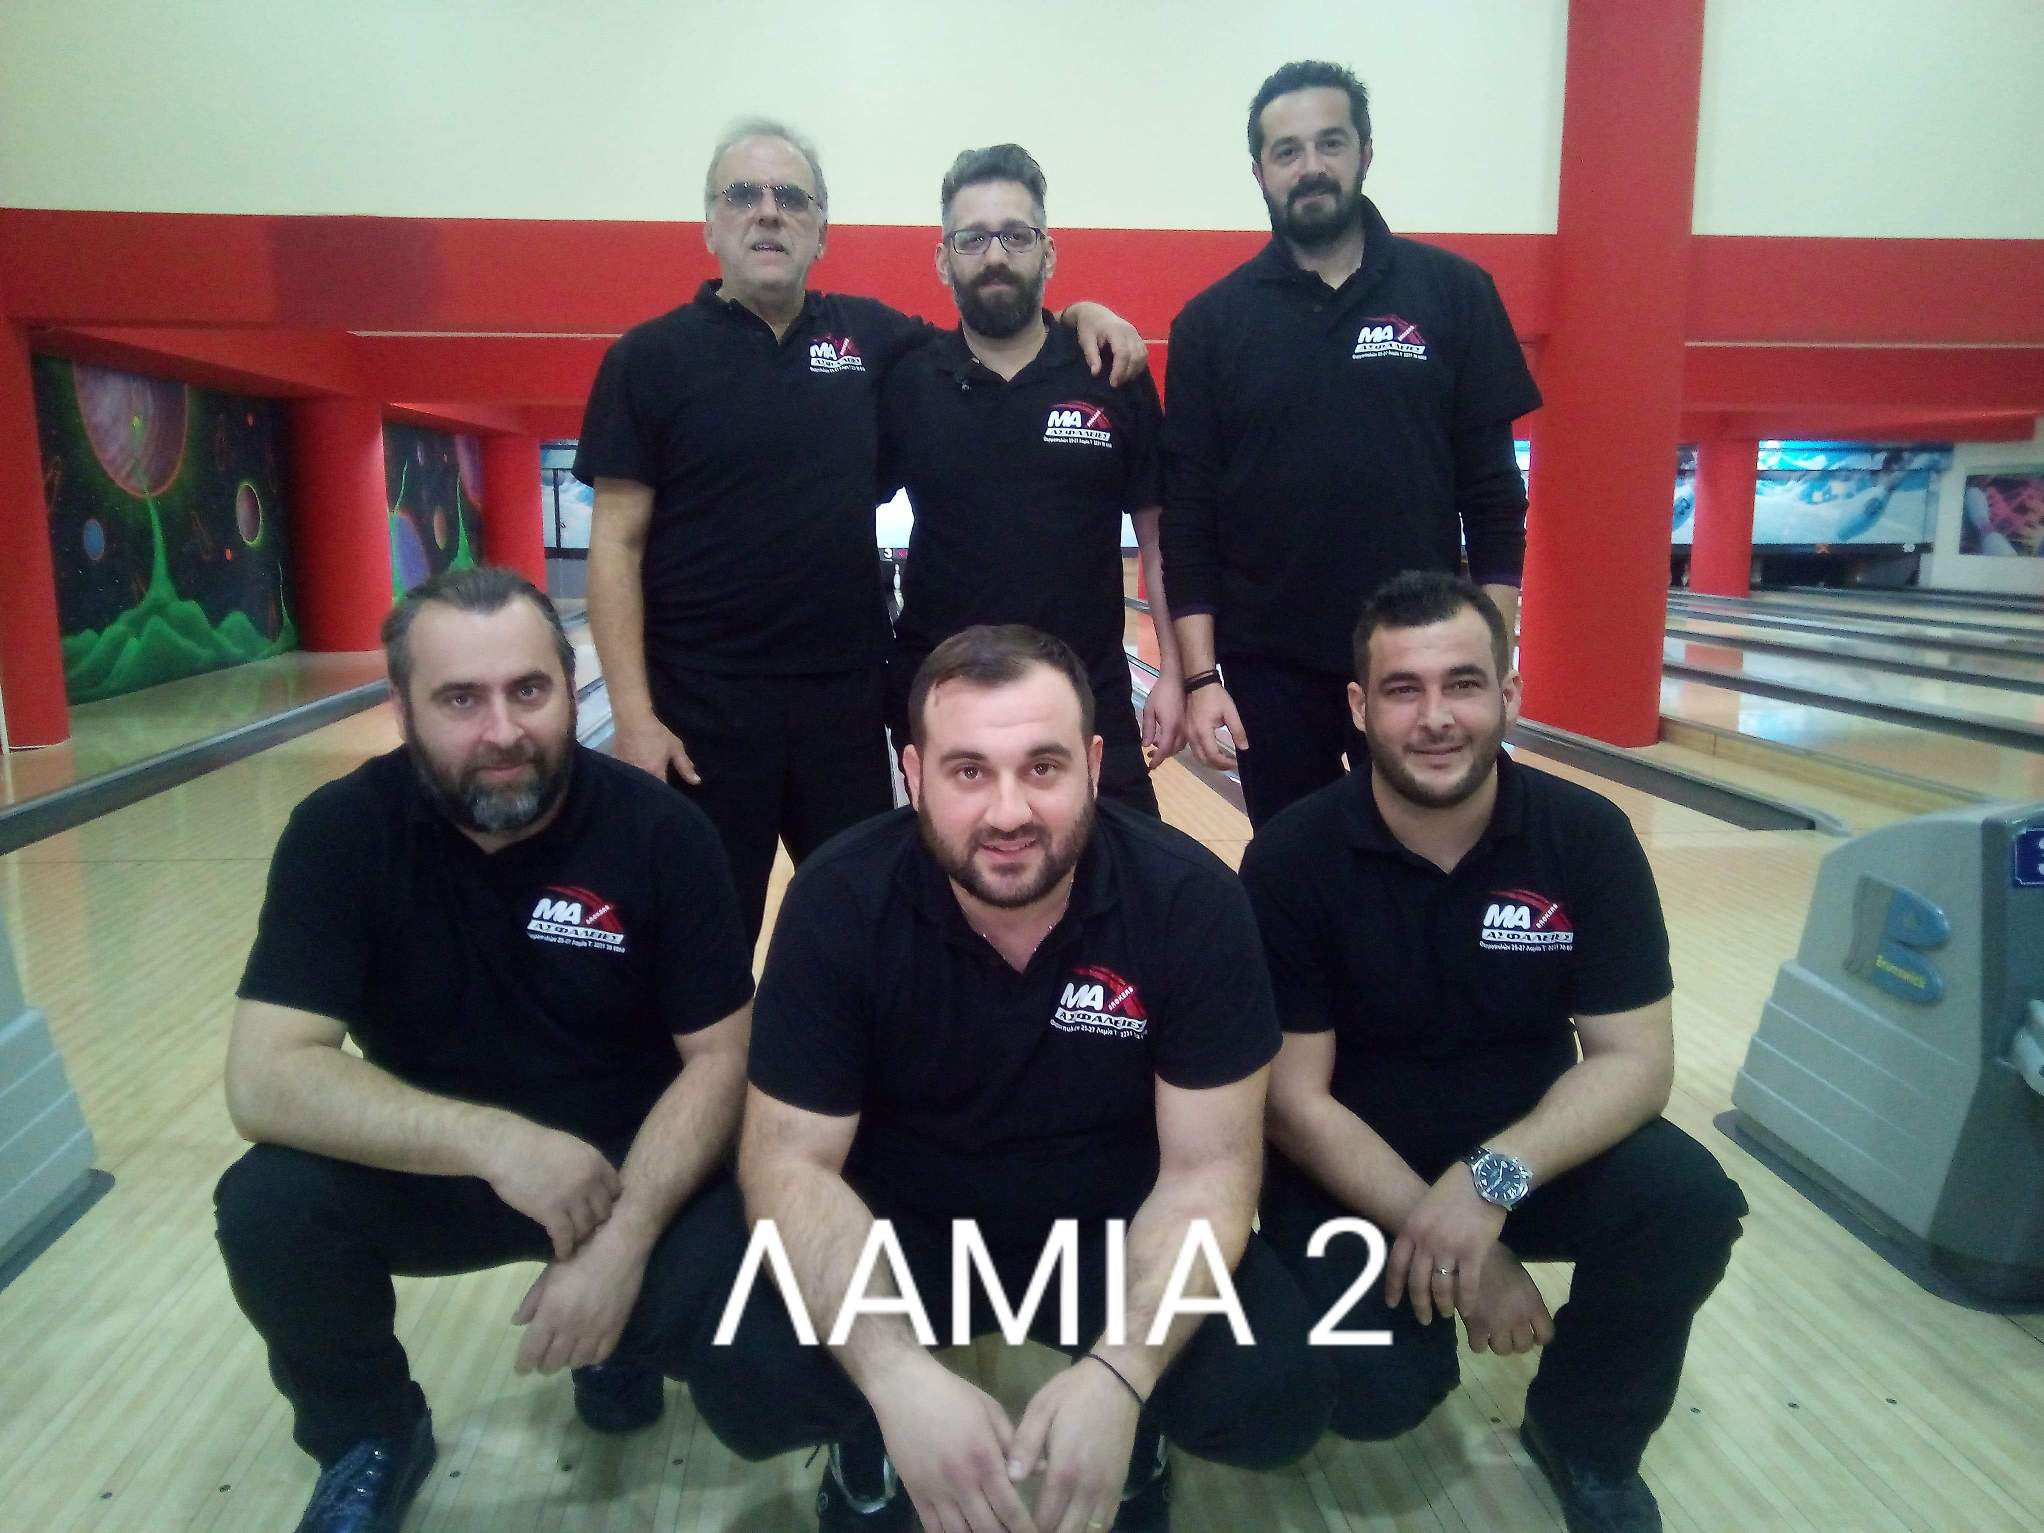 bowling-prokr-omad-2019-2020_3